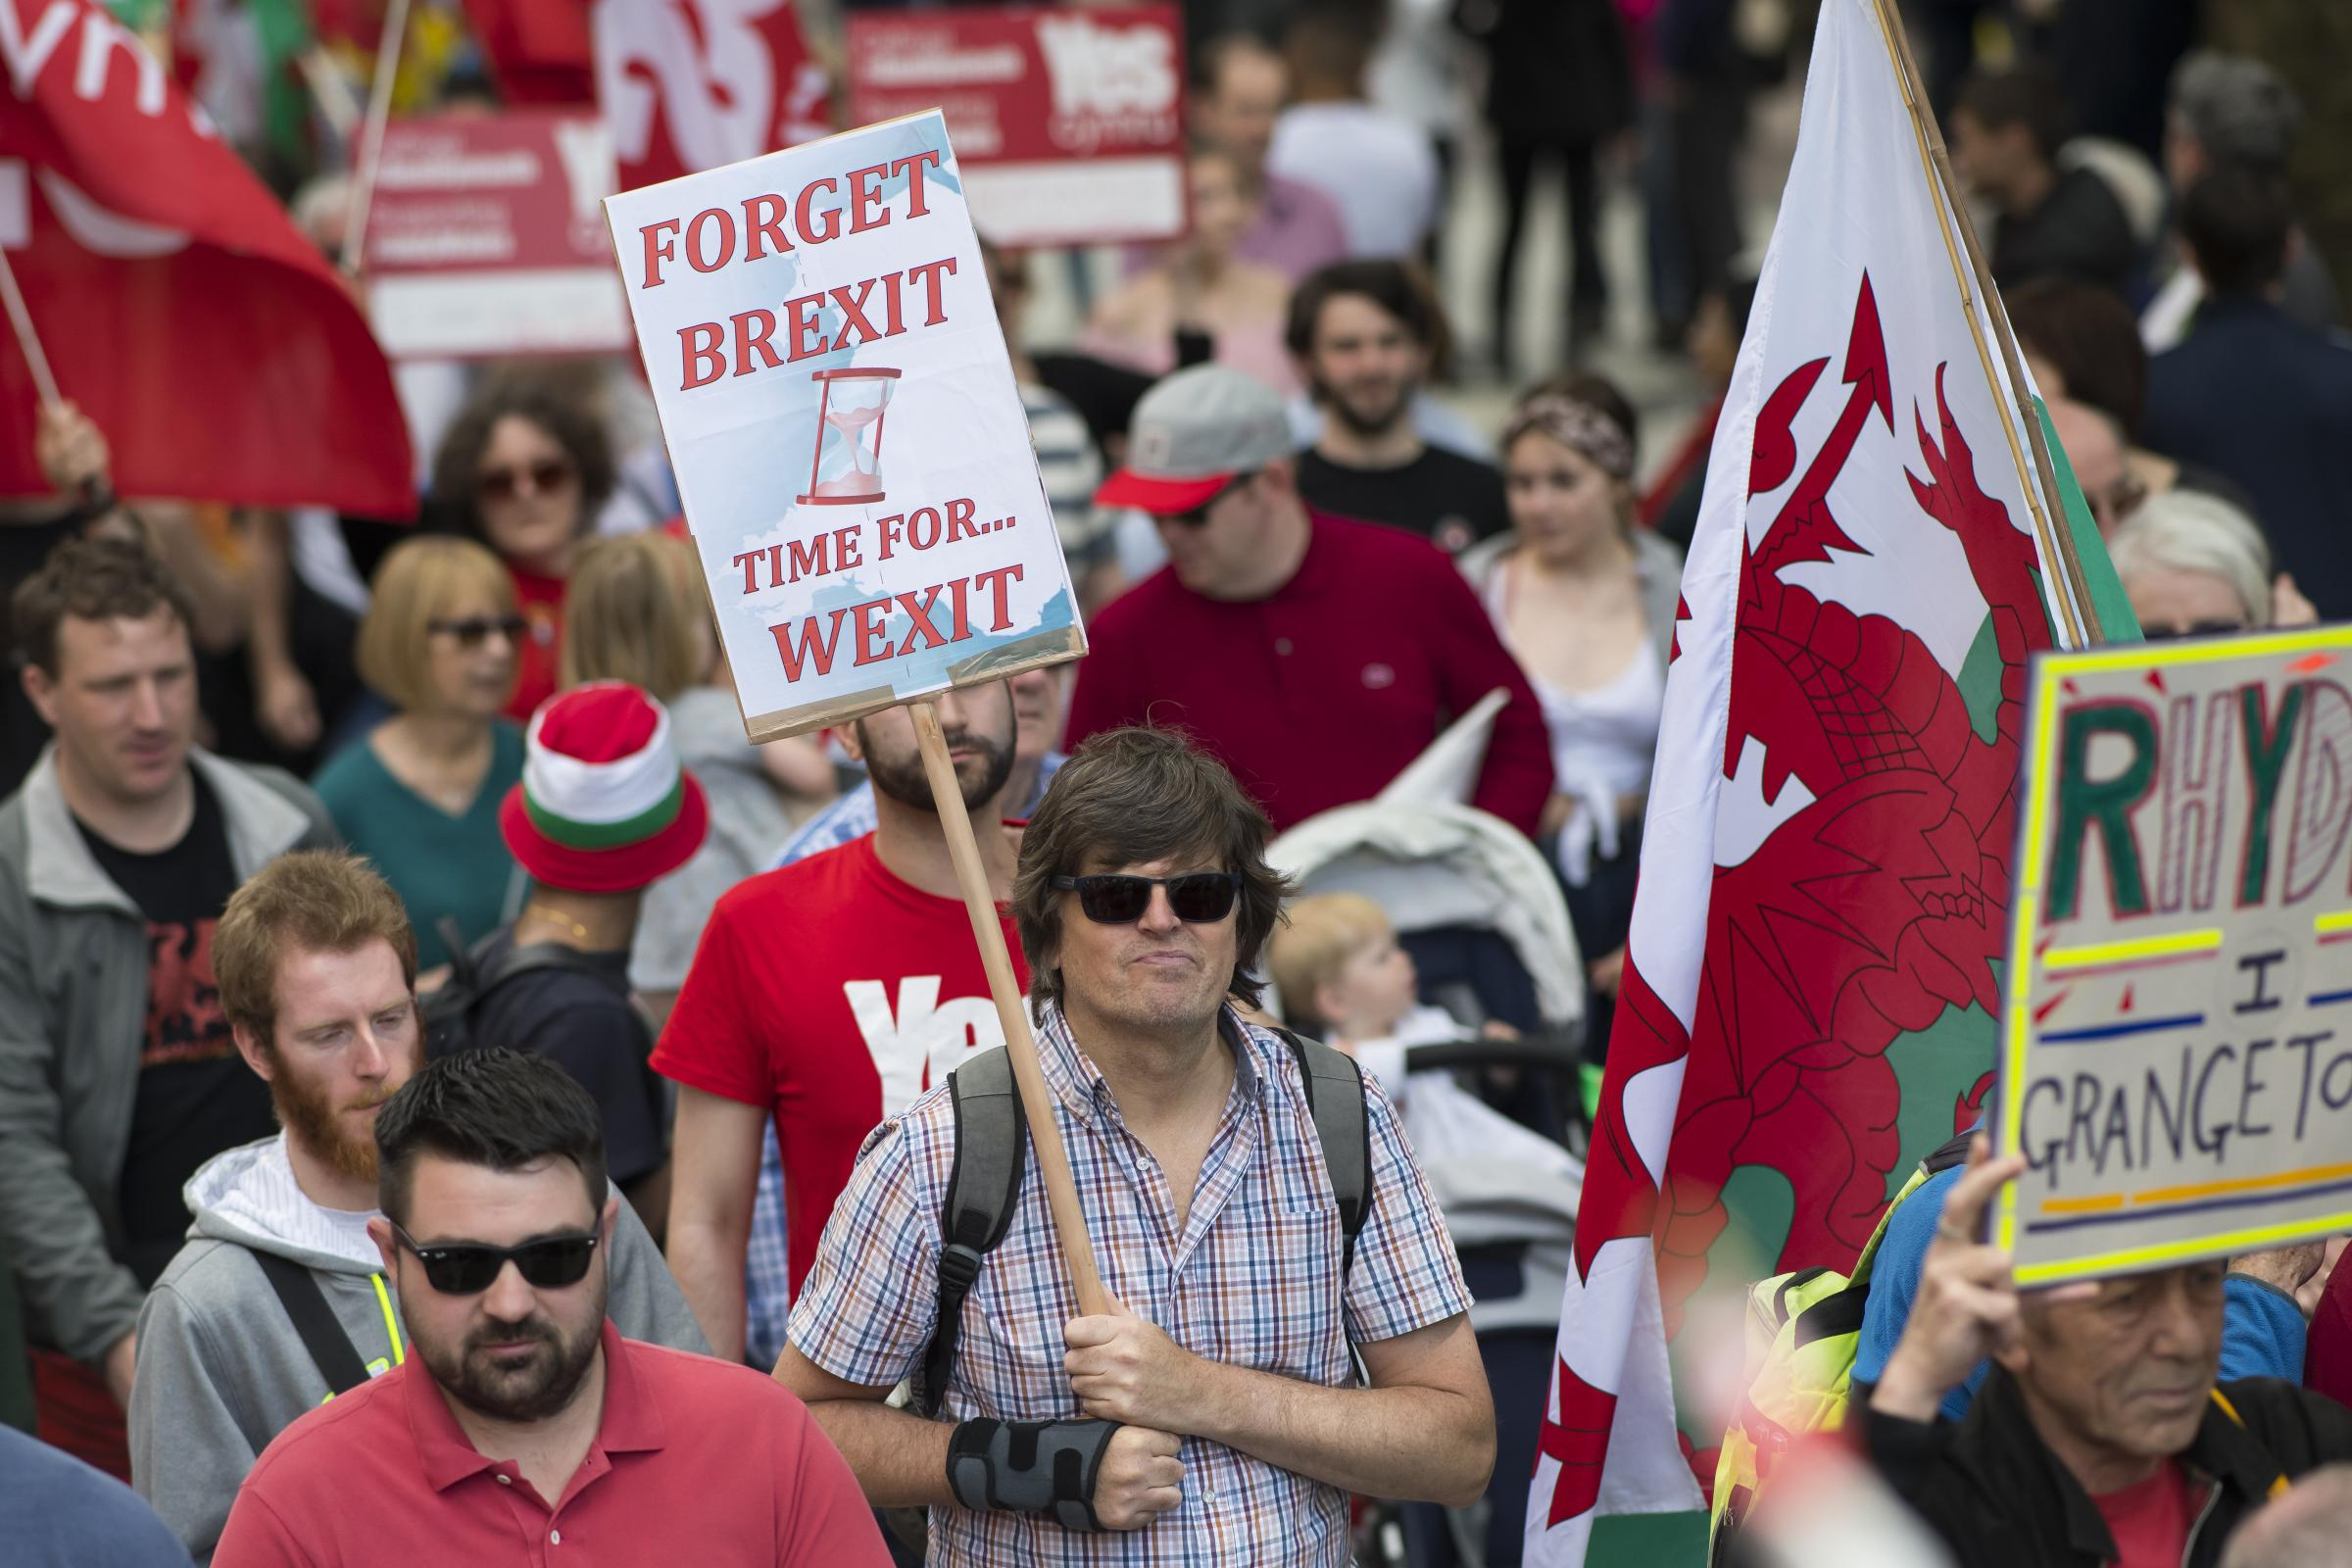 Support for Welsh independence reaches 'historic high'